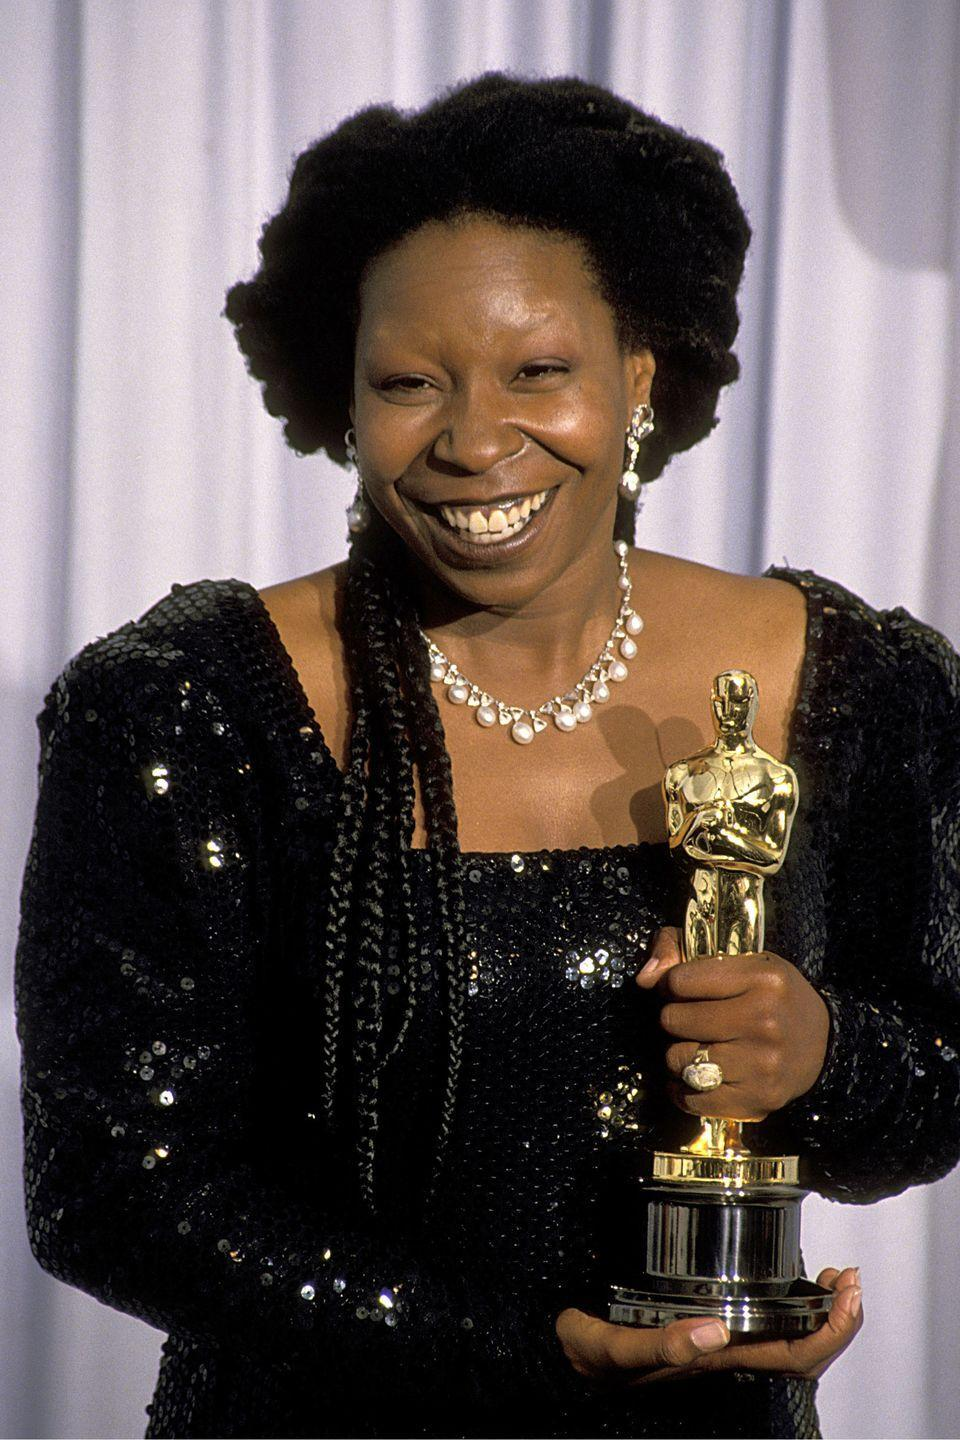 """<p><strong>Born</strong>: Caryn Johnson</p><p>While <a href=""""https://www.hellomagazine.com/celebrities/2017021036551/whoopi-goldberg-reveals-hilarious-reason-she-got-her-name/"""" rel=""""nofollow noopener"""" target=""""_blank"""" data-ylk=""""slk:guest starring on The Graham Norton Show"""" class=""""link rapid-noclick-resp"""">guest starring on <em>The Graham Norton Show</em></a>, Goldberg revealed that she got her stage name by acting like a whoopee cushion when she first started out. """"No one christened me that. I am Karen, but I was a bit of a farter,"""" she joked. """"The theatres I was performing in were very small so if you were gassy you had to walk away farting and people would say I was like a Whoopee cushion. I was sometimes quite noisy, never offensive.""""</p>"""